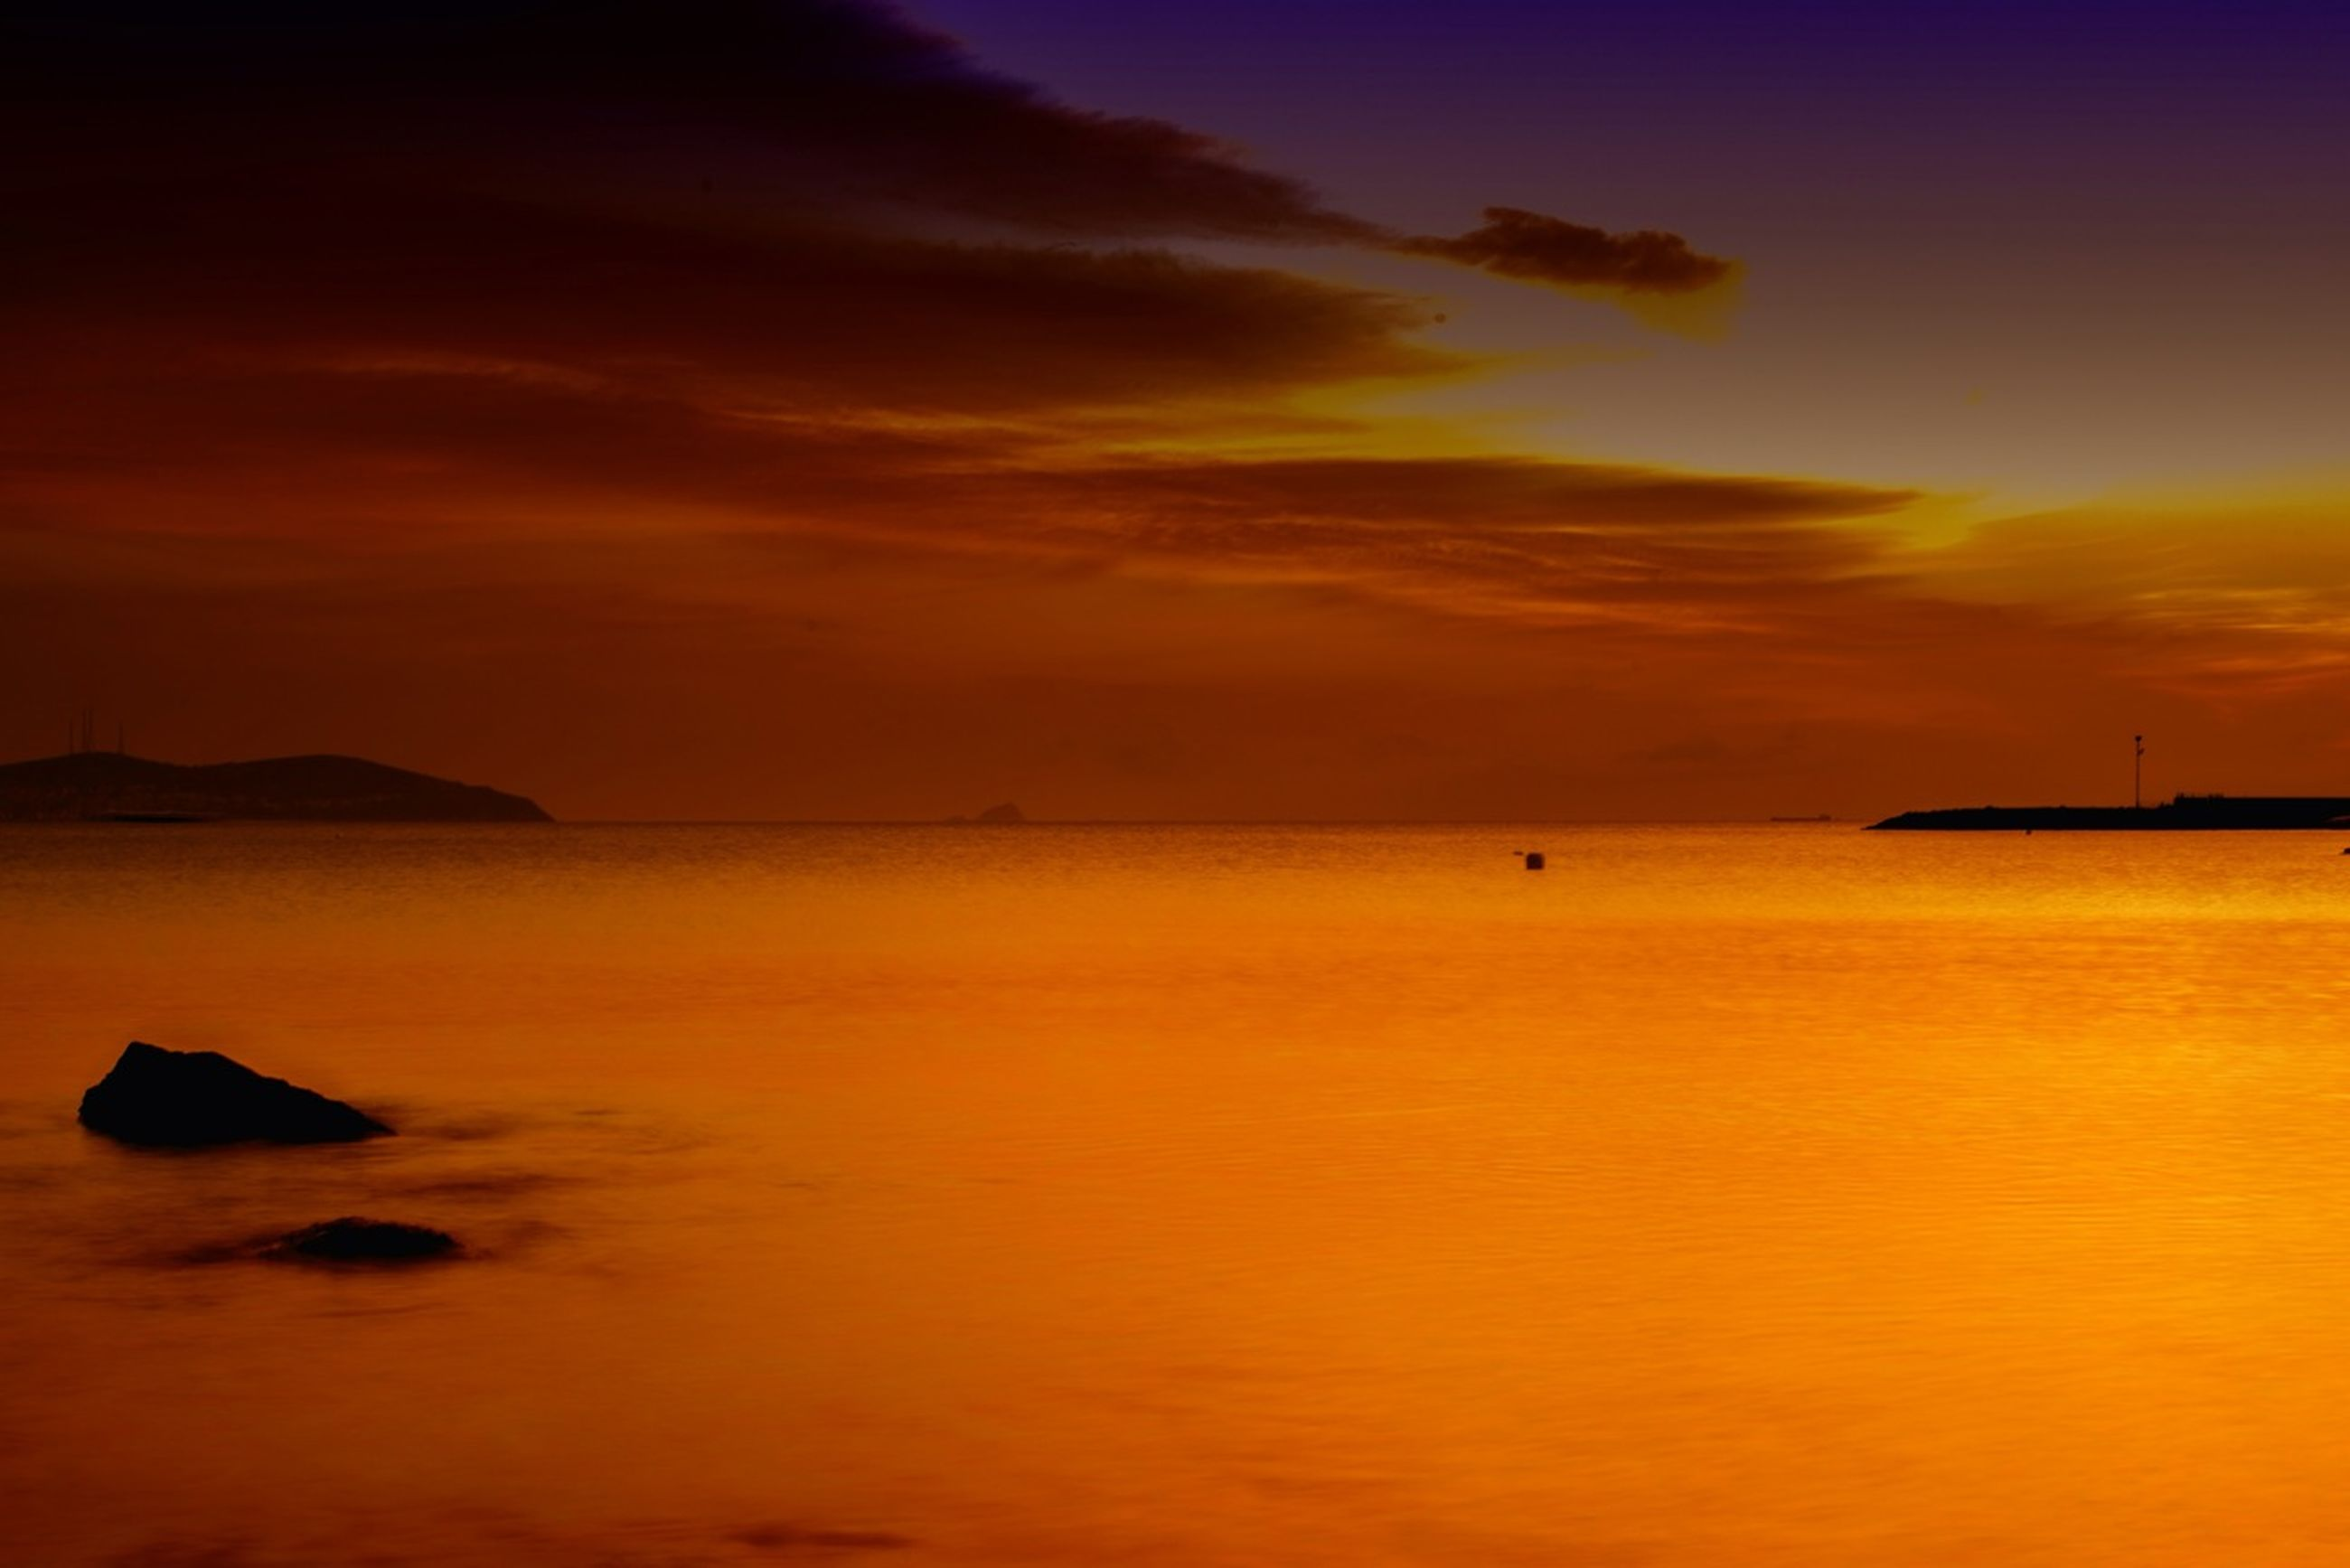 sunset, water, scenics, tranquil scene, sea, tranquility, beauty in nature, orange color, sky, idyllic, waterfront, nature, reflection, horizon over water, cloud - sky, silhouette, dramatic sky, majestic, cloud, dusk